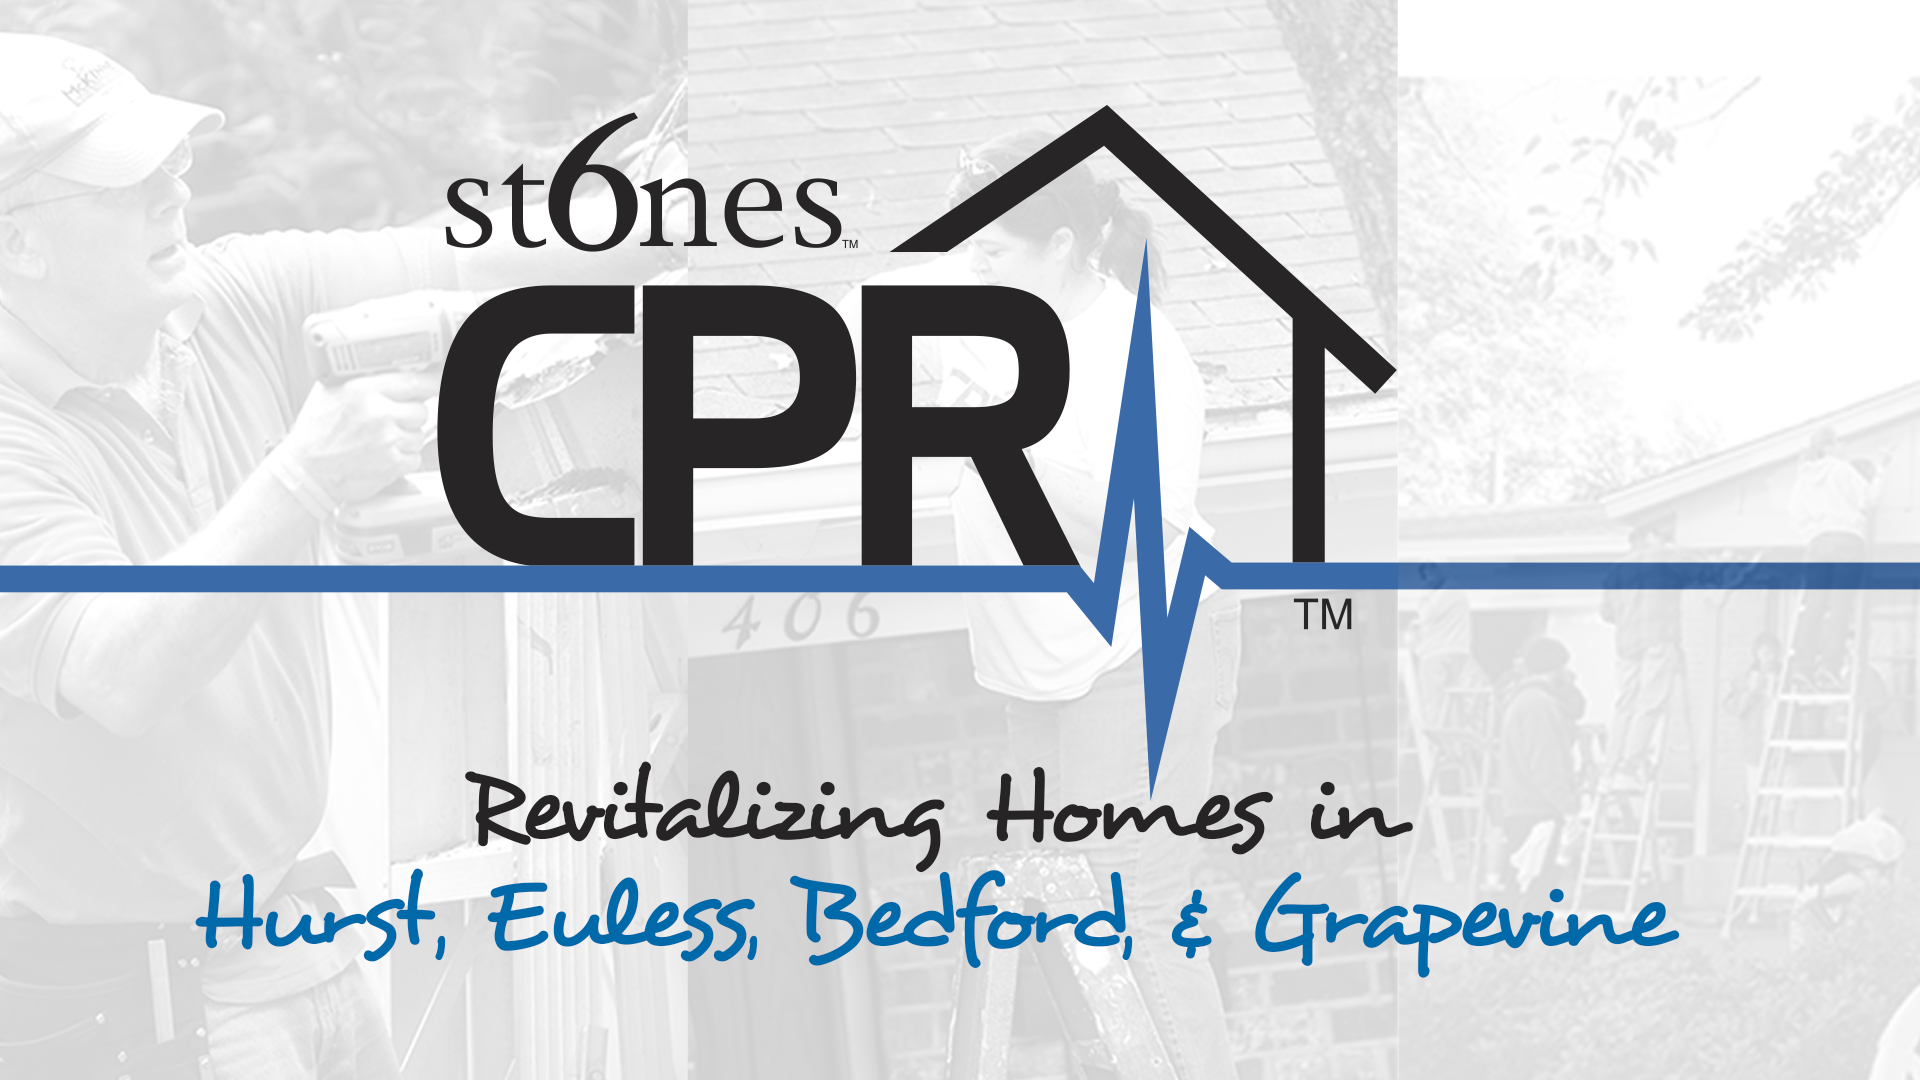 CPR: Community Powered Revitalization